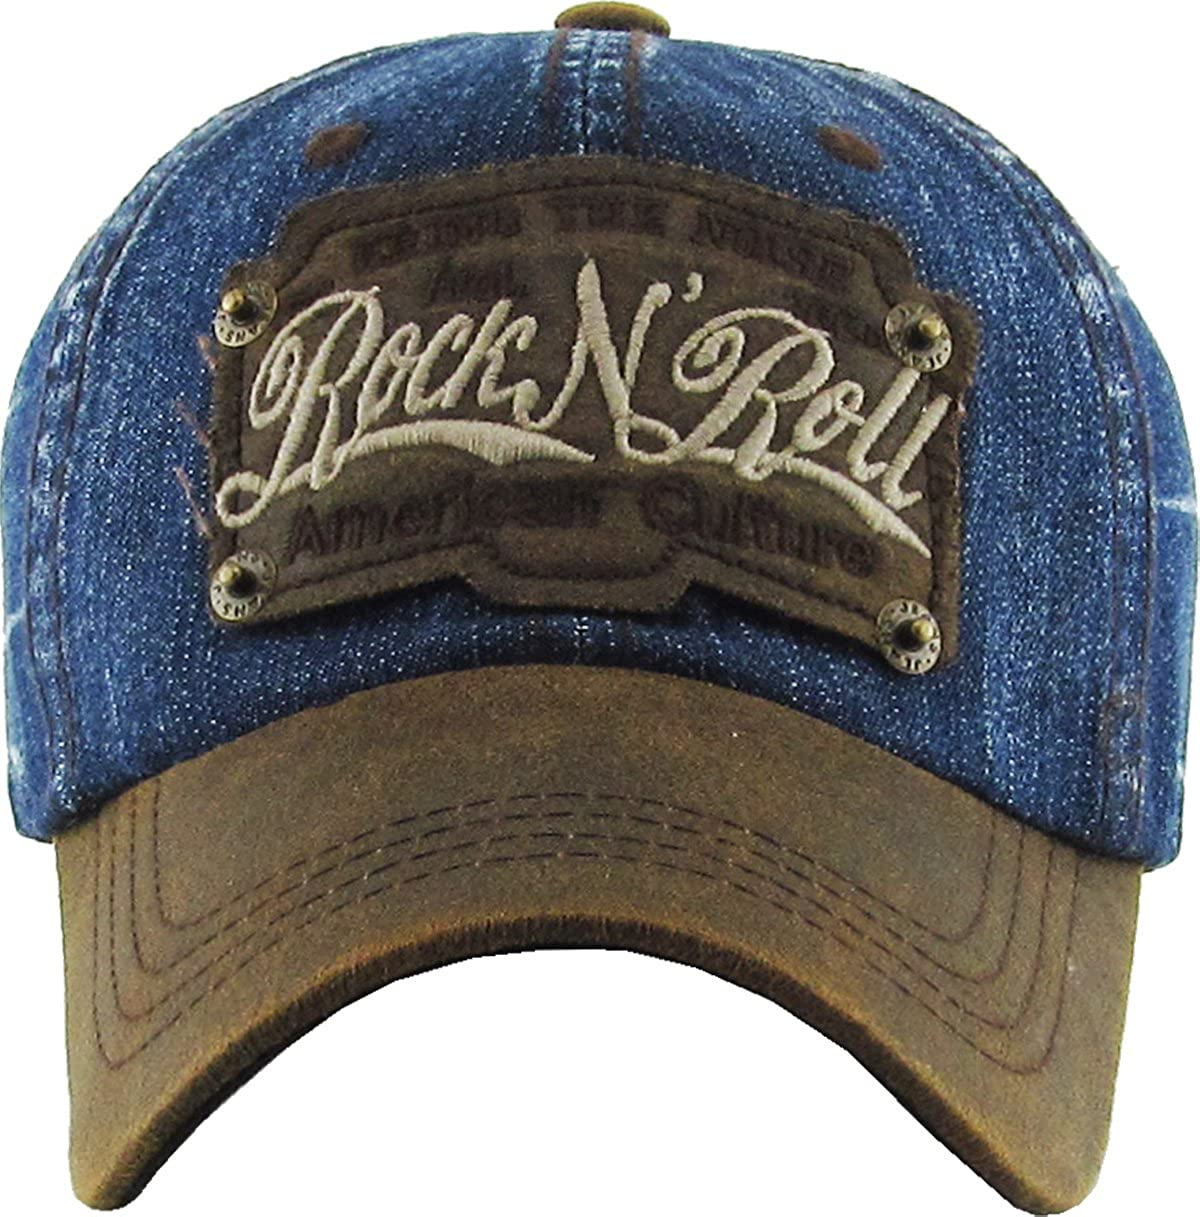 Black Denim KBETHOS Vintage Distressed ROCK N ROLL Washed Baseball Cap Hat